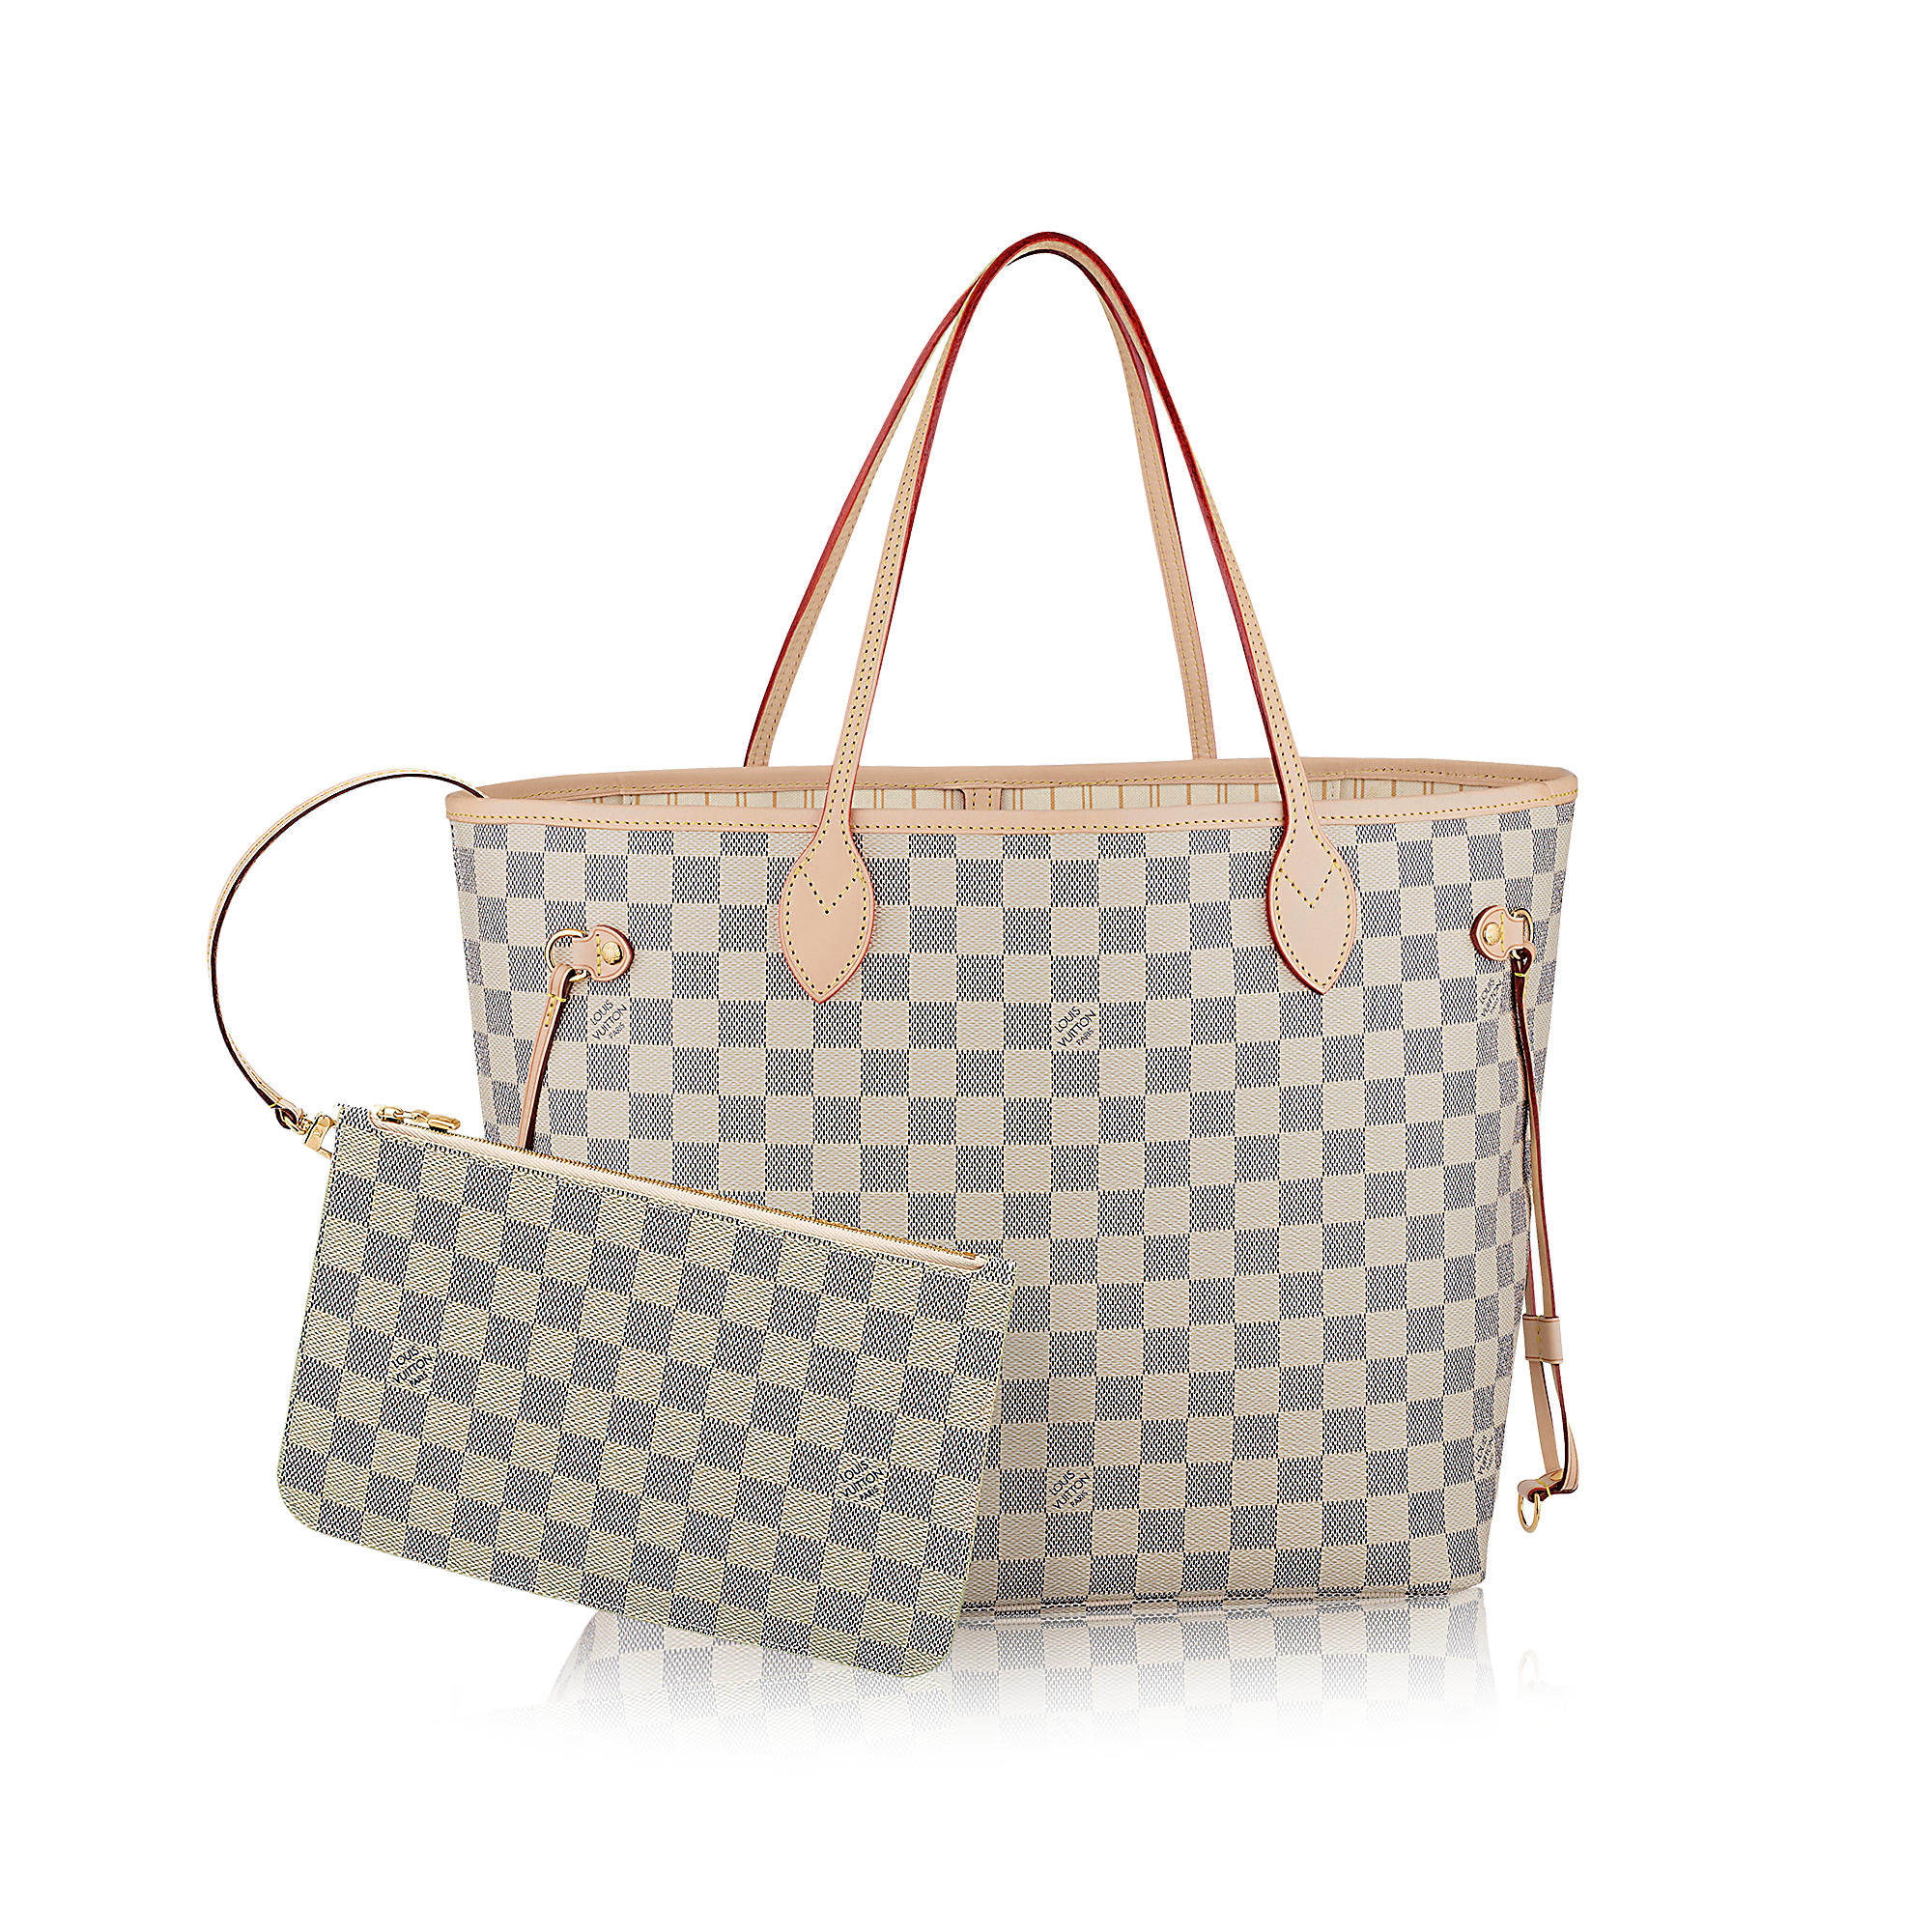 Neverful MM in Tela Damier Azur